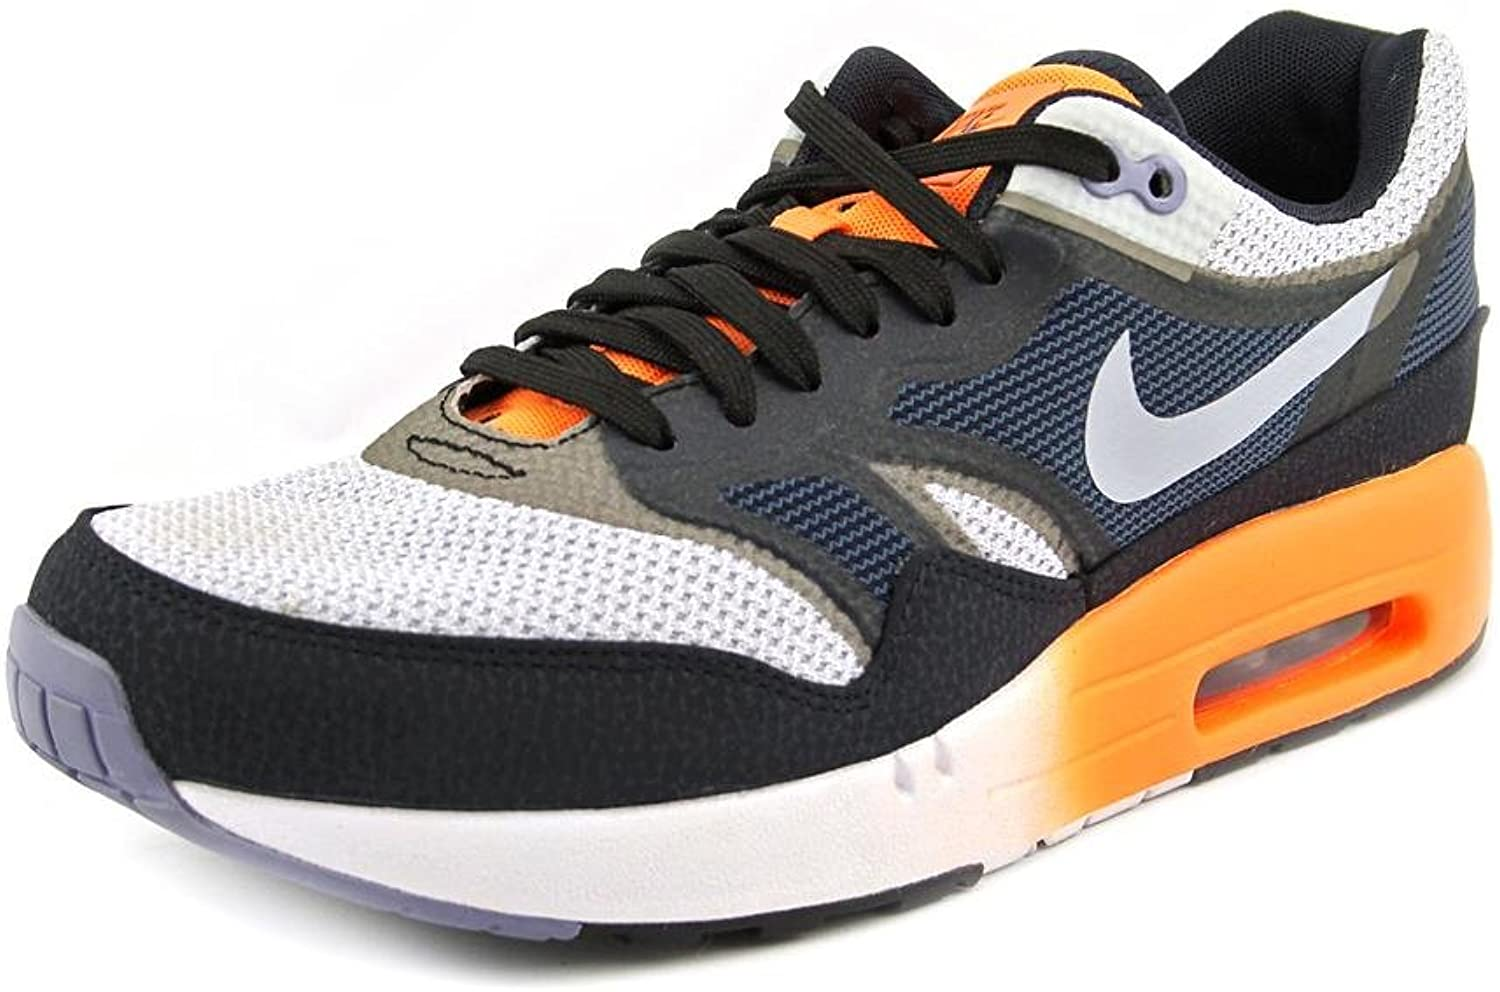 Nike Men's Air Max 1 C2.0 Gymnastics shoes